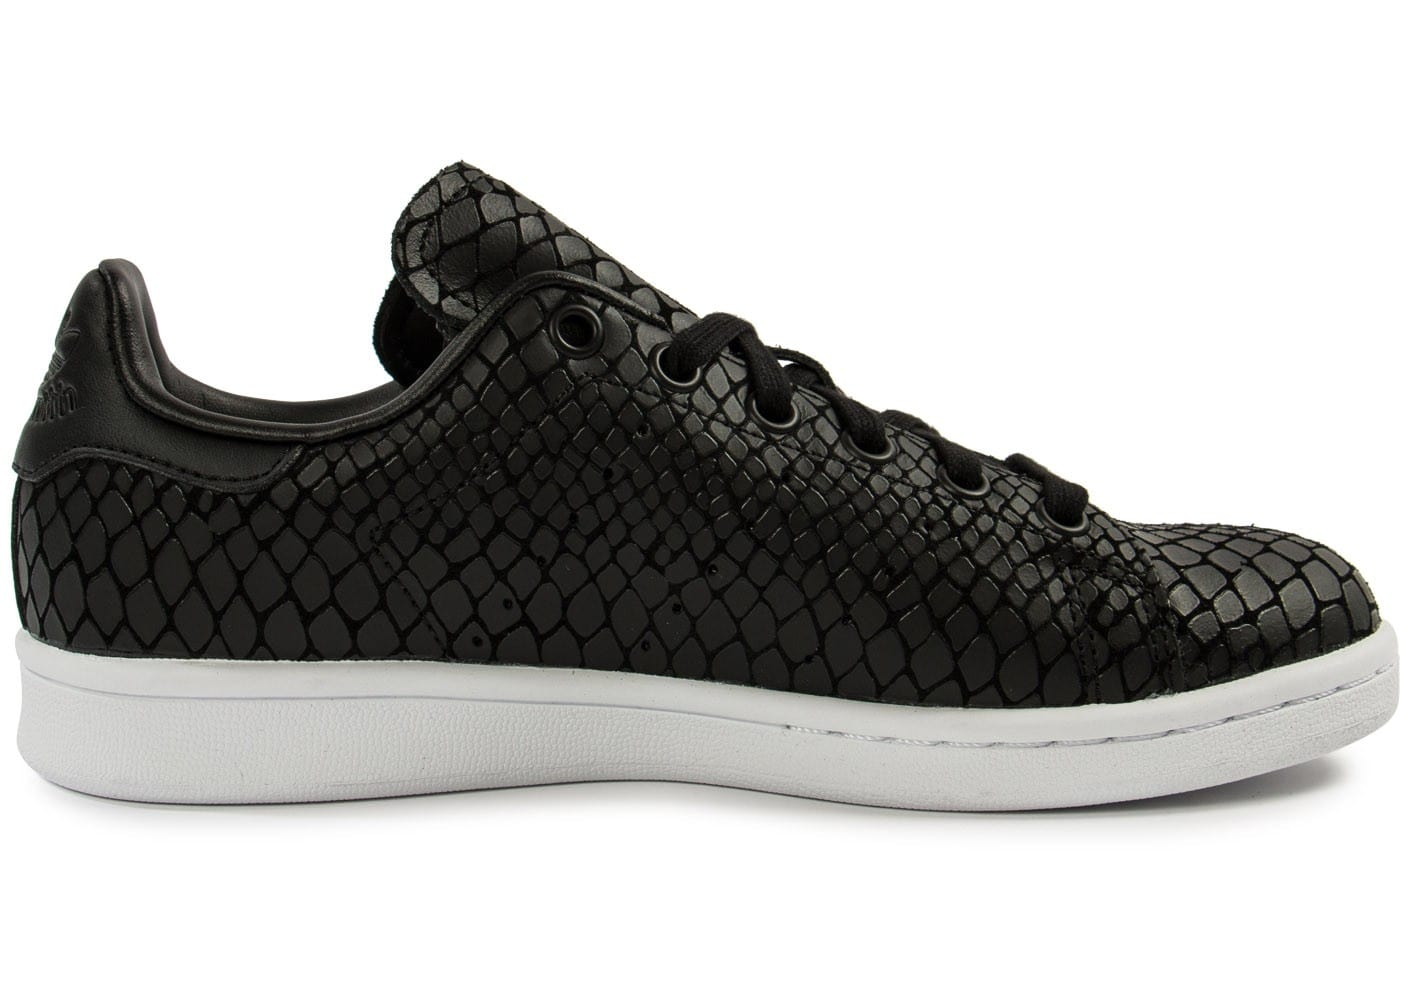 adidas stan smith snake noire chaussures adidas chausport. Black Bedroom Furniture Sets. Home Design Ideas